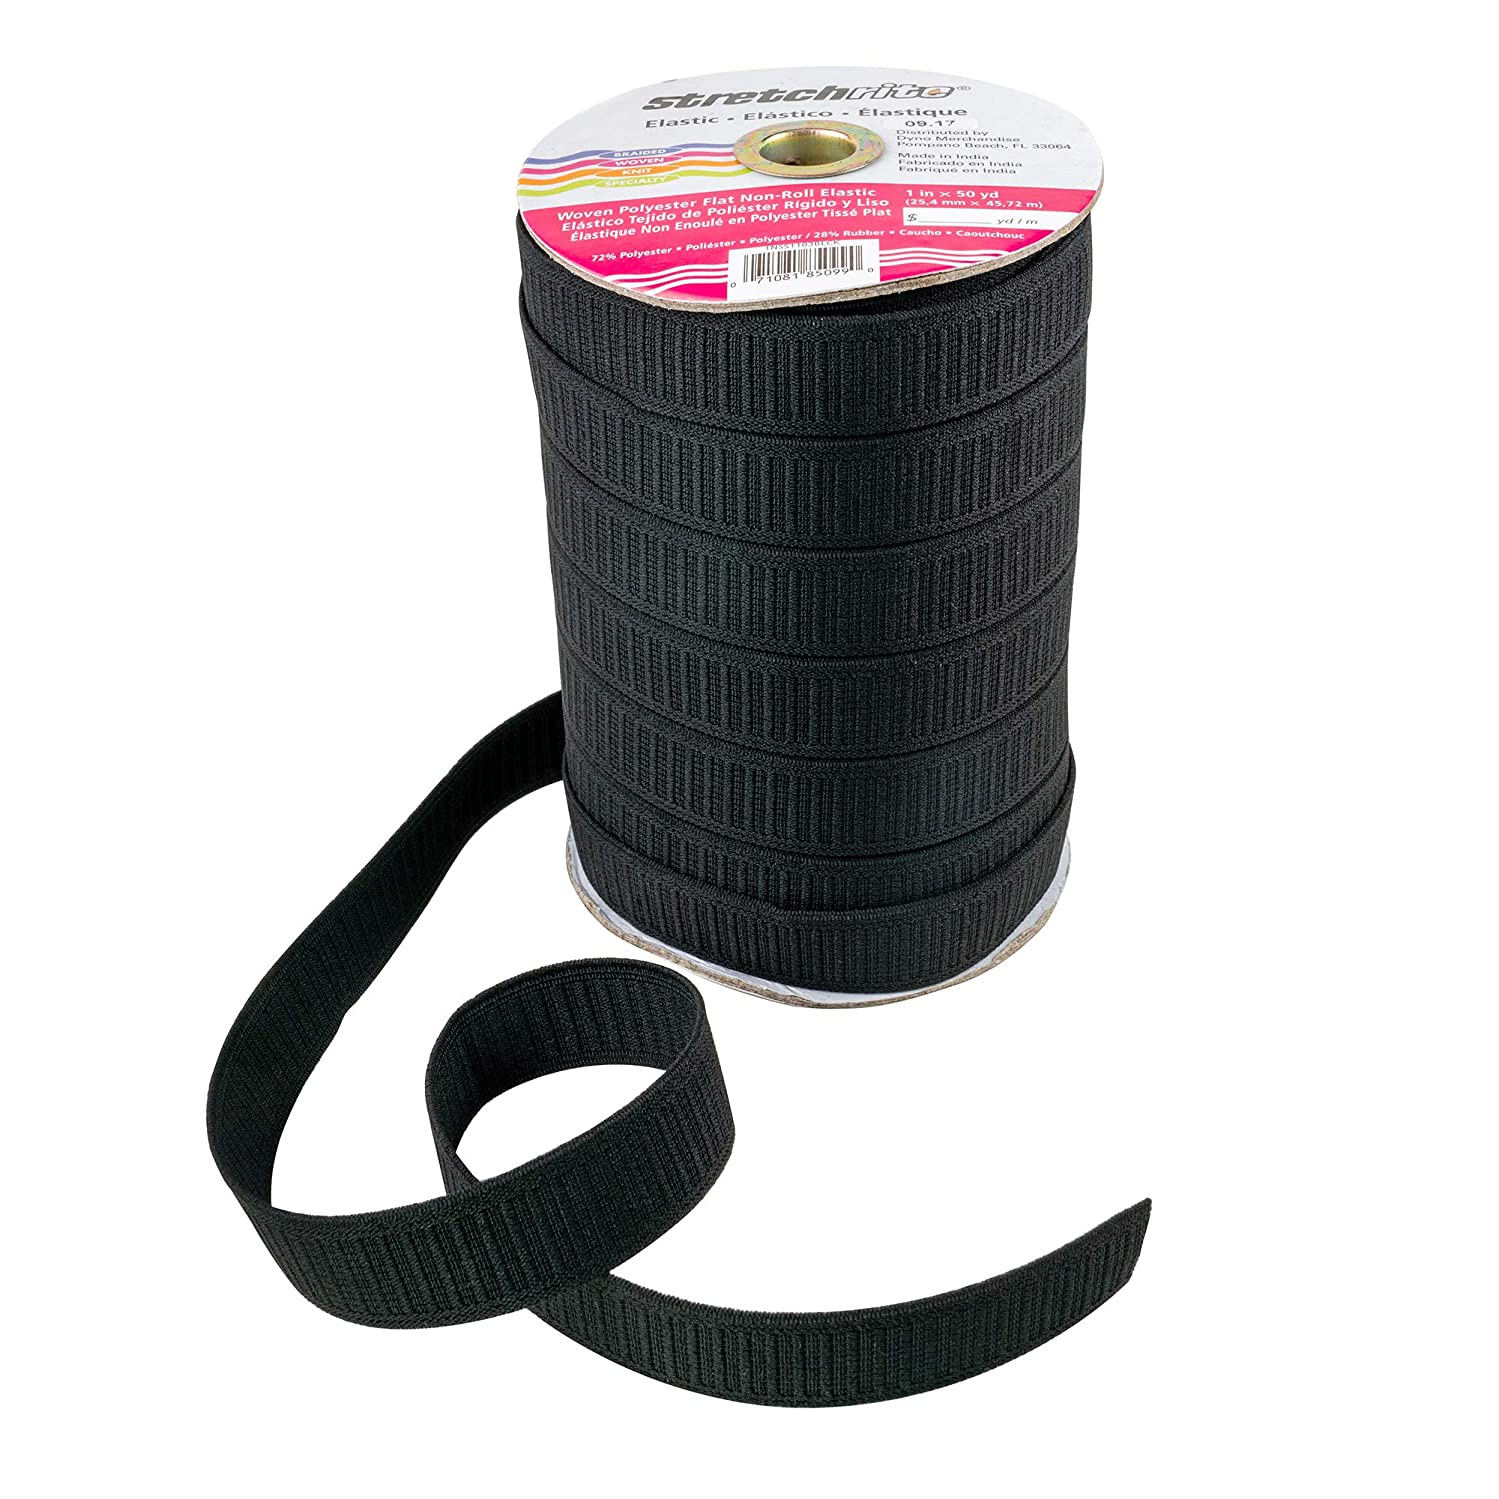 Stretchrite 1NSS1103BLCK Stretchrite 1-Inch by 50-Yard Black Flat Non-Roll Woven Polyester Elastic Spool